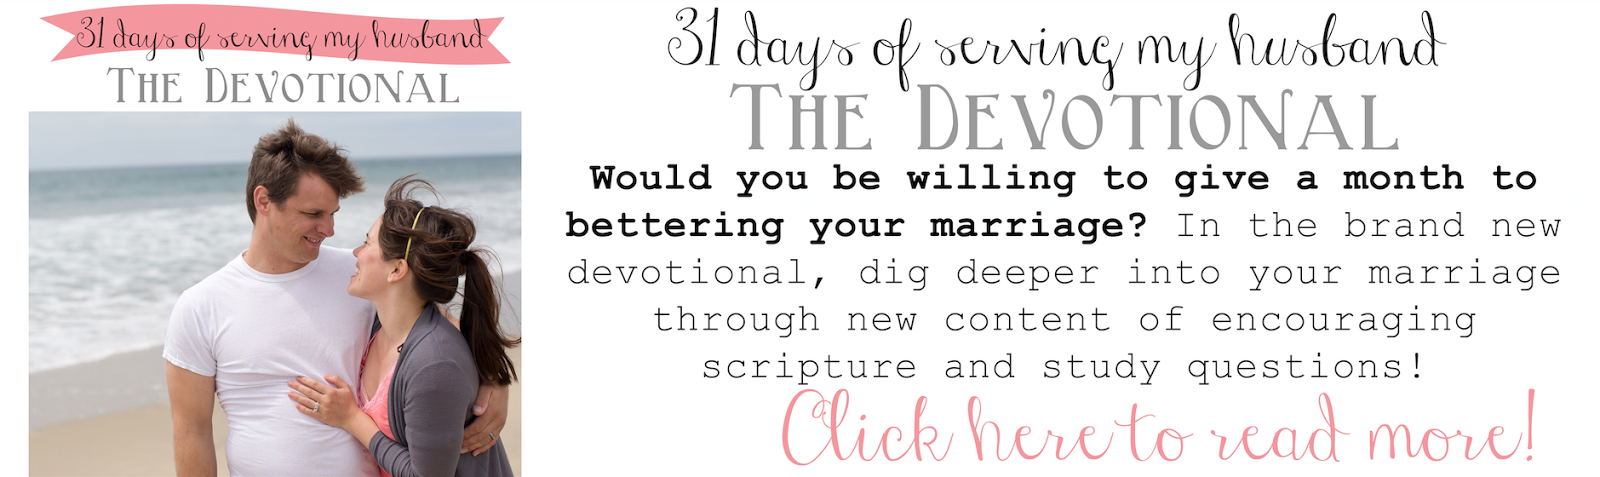 http://www.domesticfashionista.com/2007/09/31-days-of-serving-my-husband-devotional.html